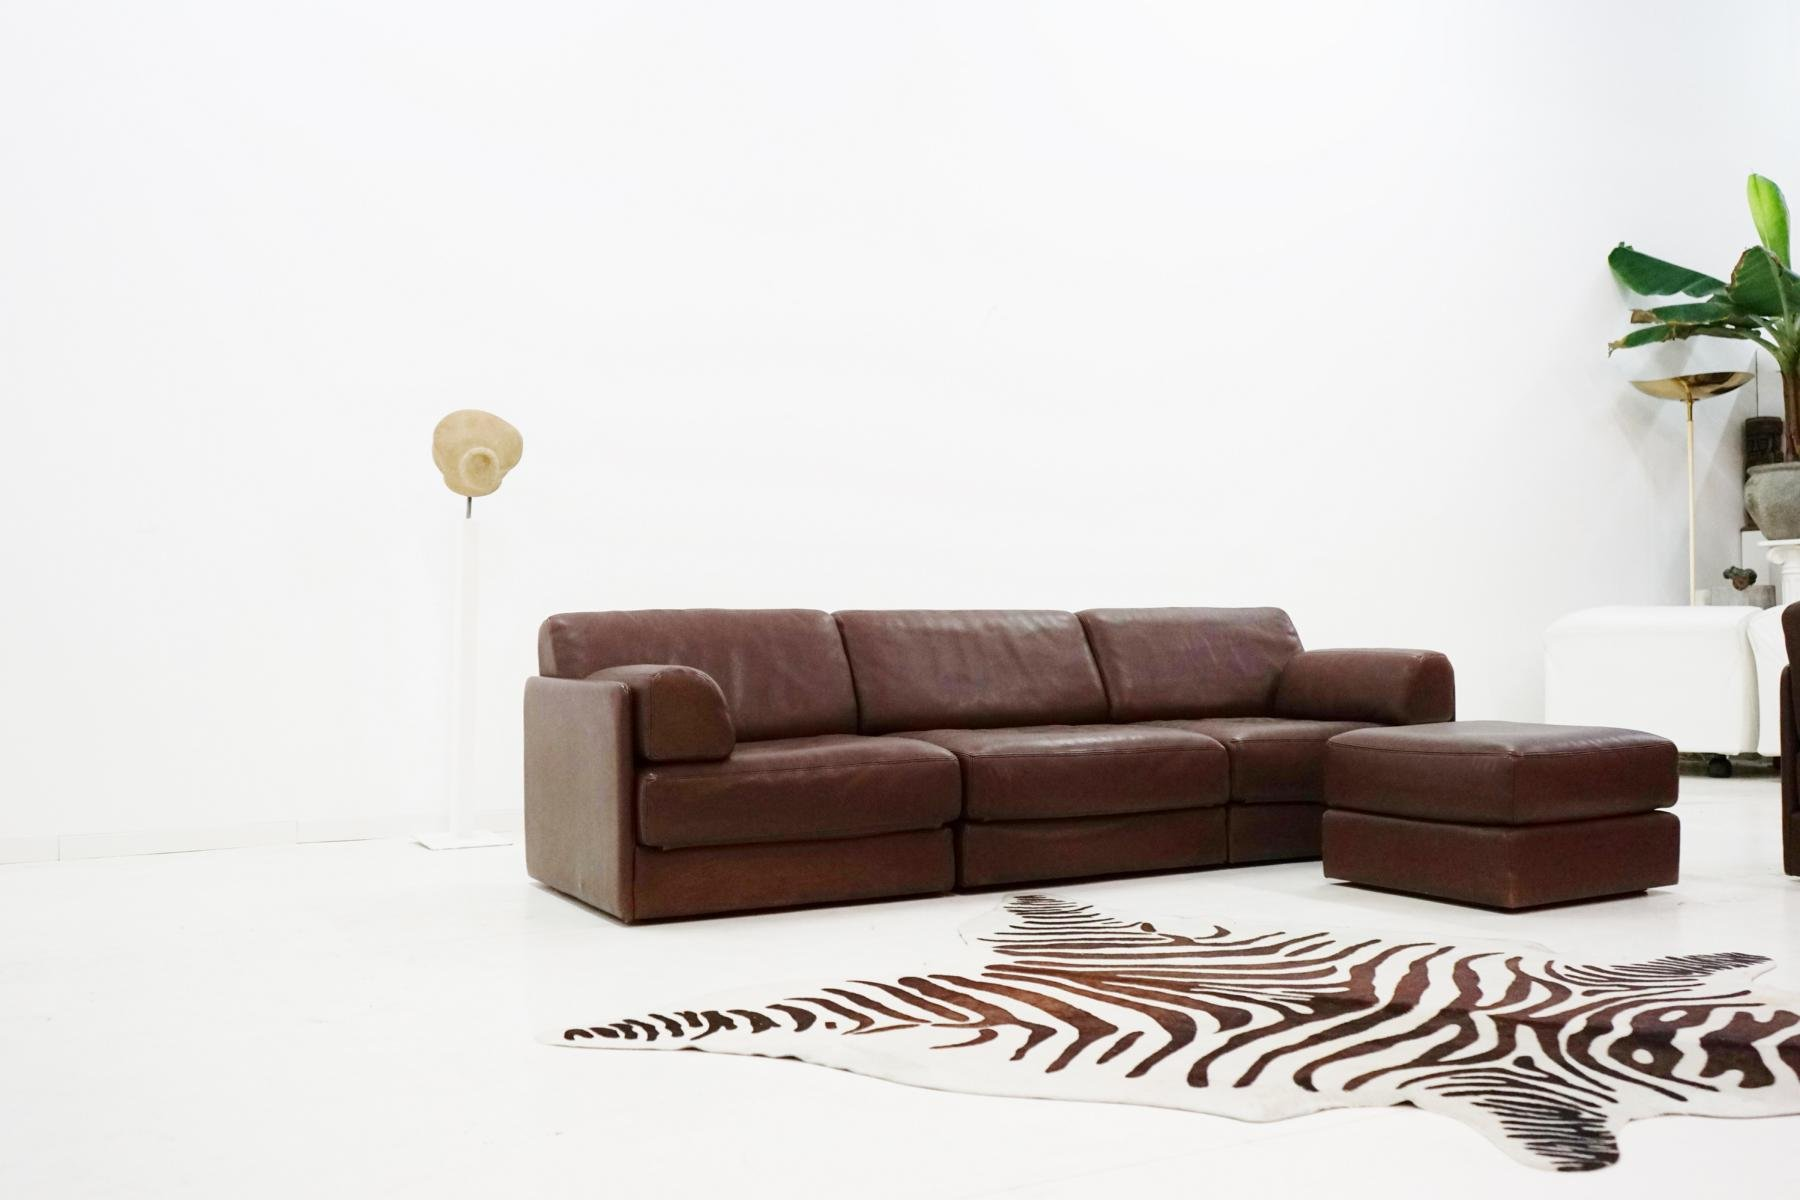 vintage ds 76 leather modular sofa from de sede for sale at pamono. Black Bedroom Furniture Sets. Home Design Ideas